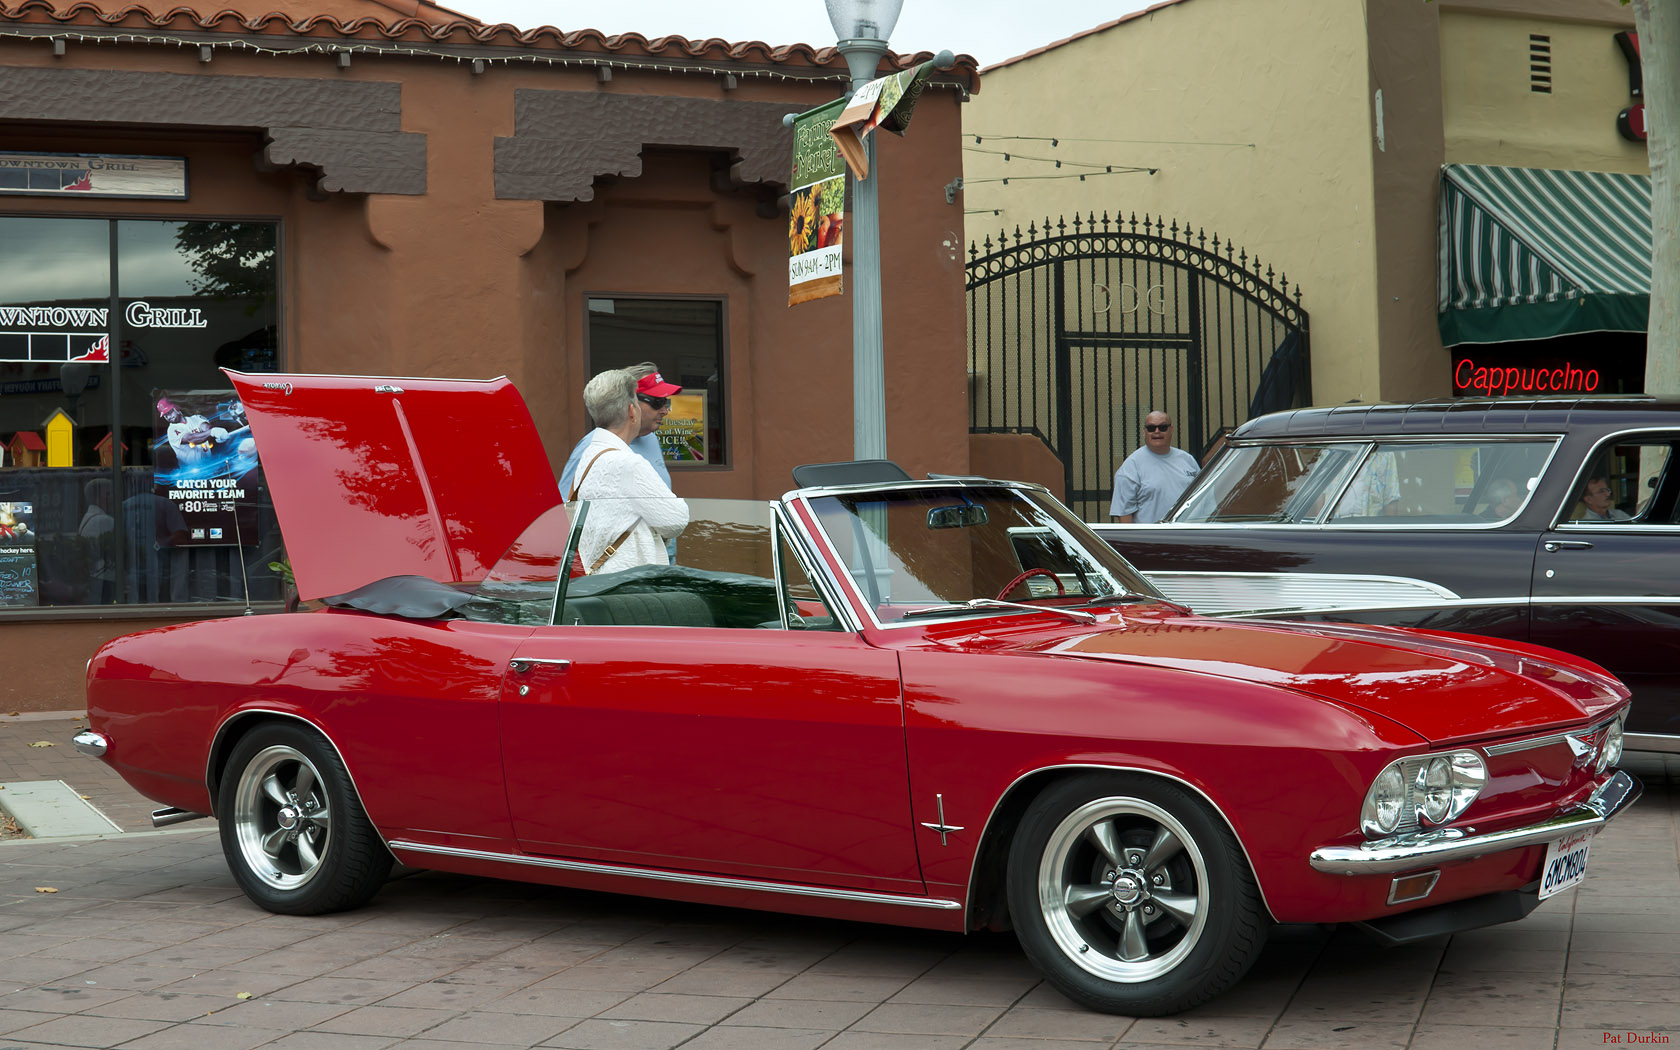 All Chevy chevy corvair monza : 1967 Chevrolet Corvair Monza Convertible - Bolero Red - fvr ...